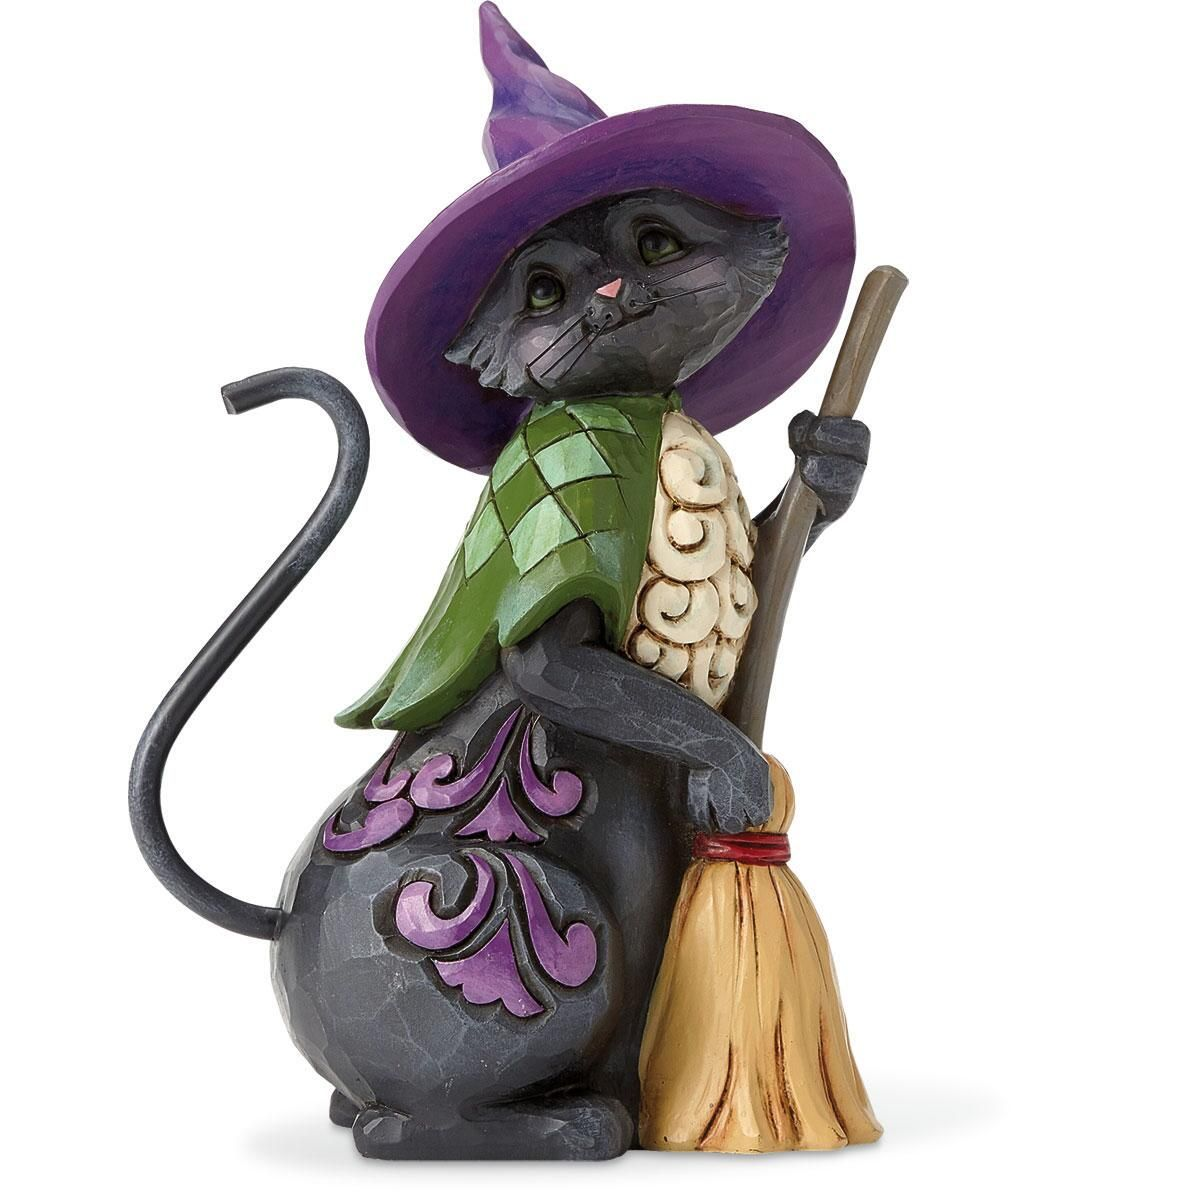 Black Cat with Broom by Jim Shore